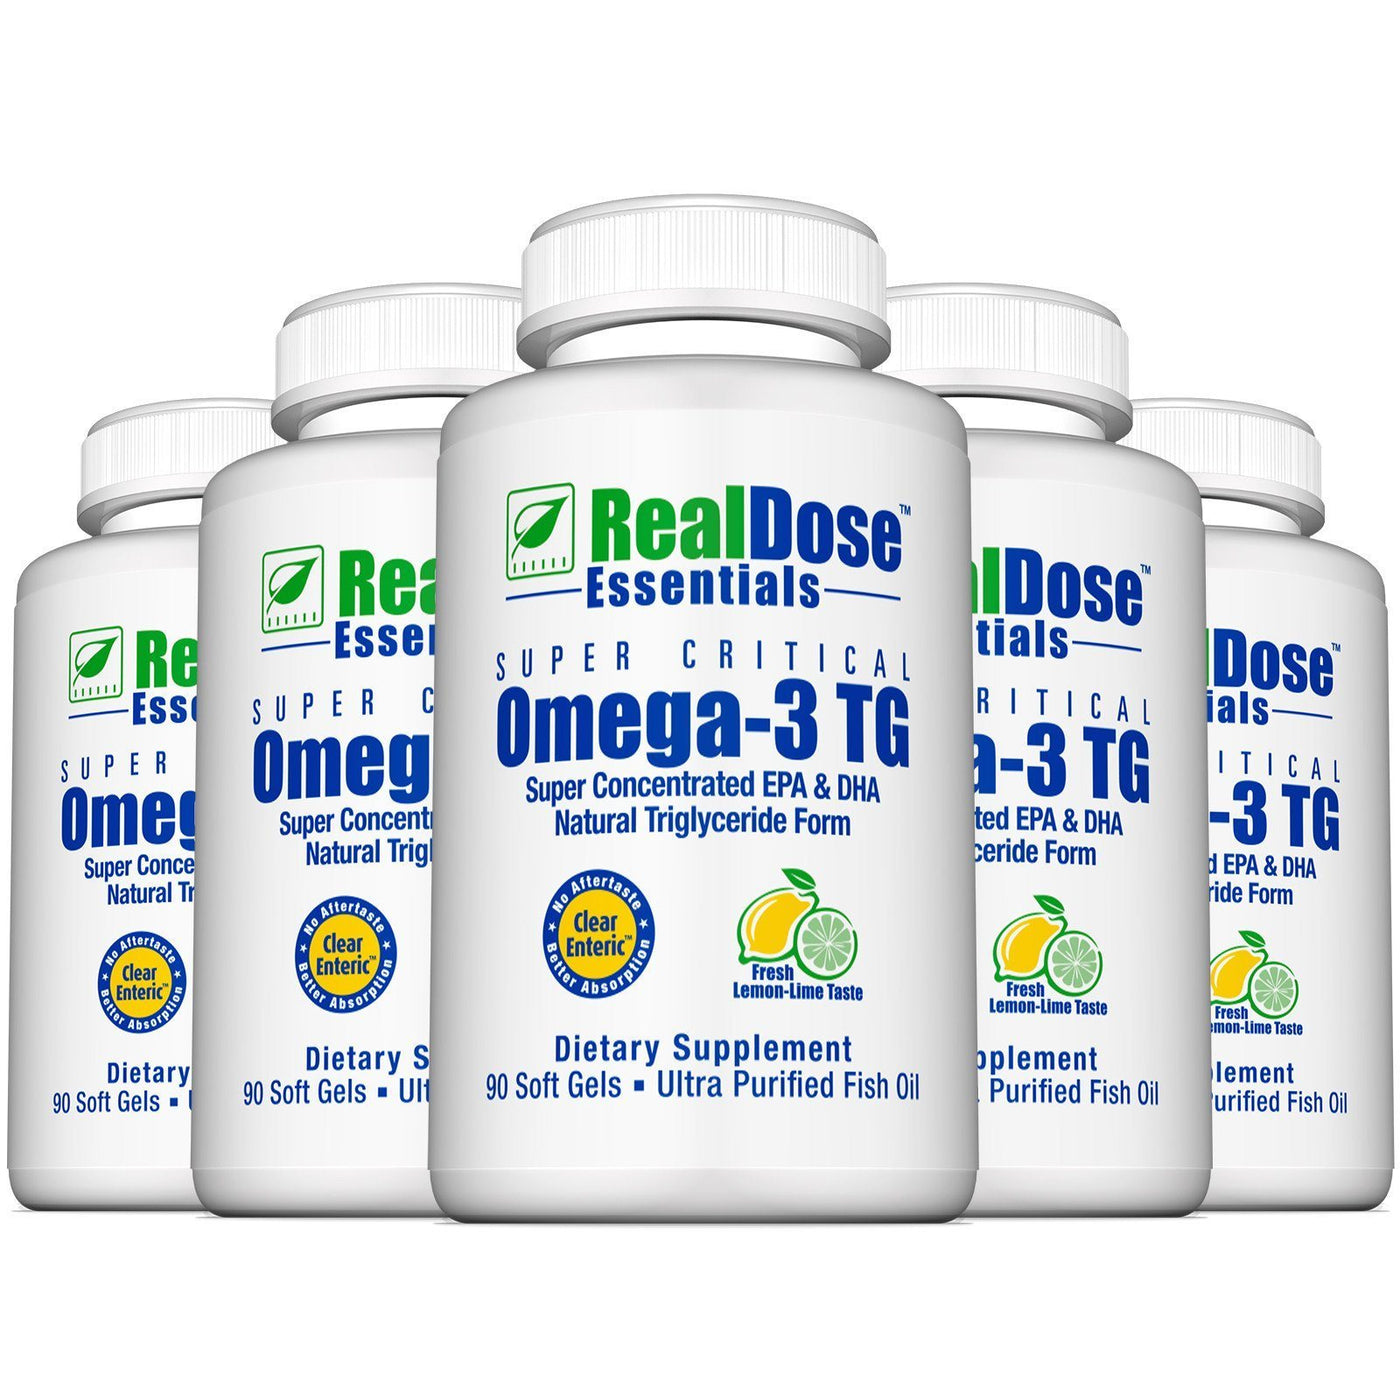 Super Critical Omega-3 TG 6 bottles Stock Up & Save